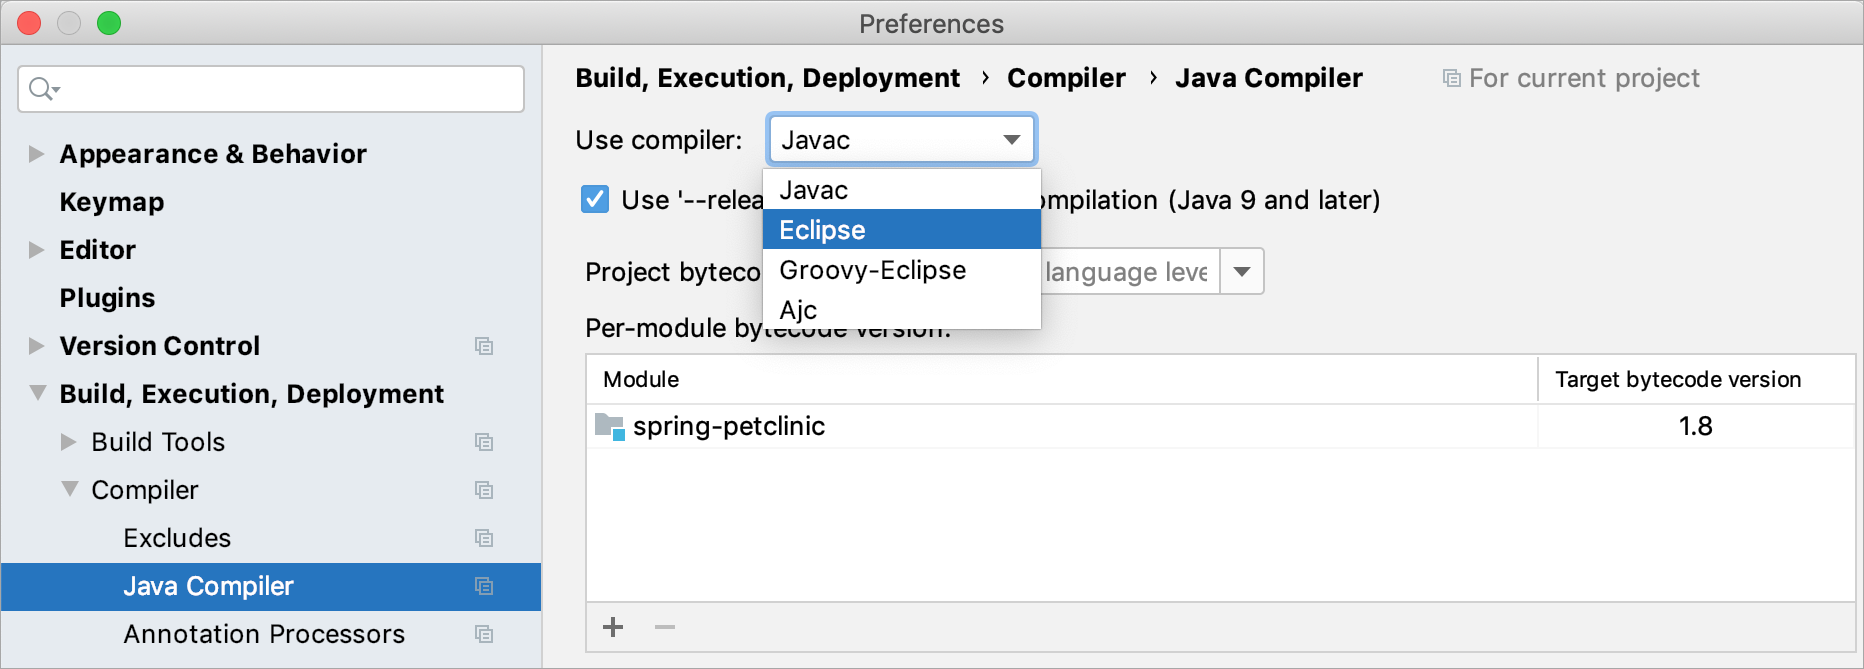 Configuring the Eclipse compiler